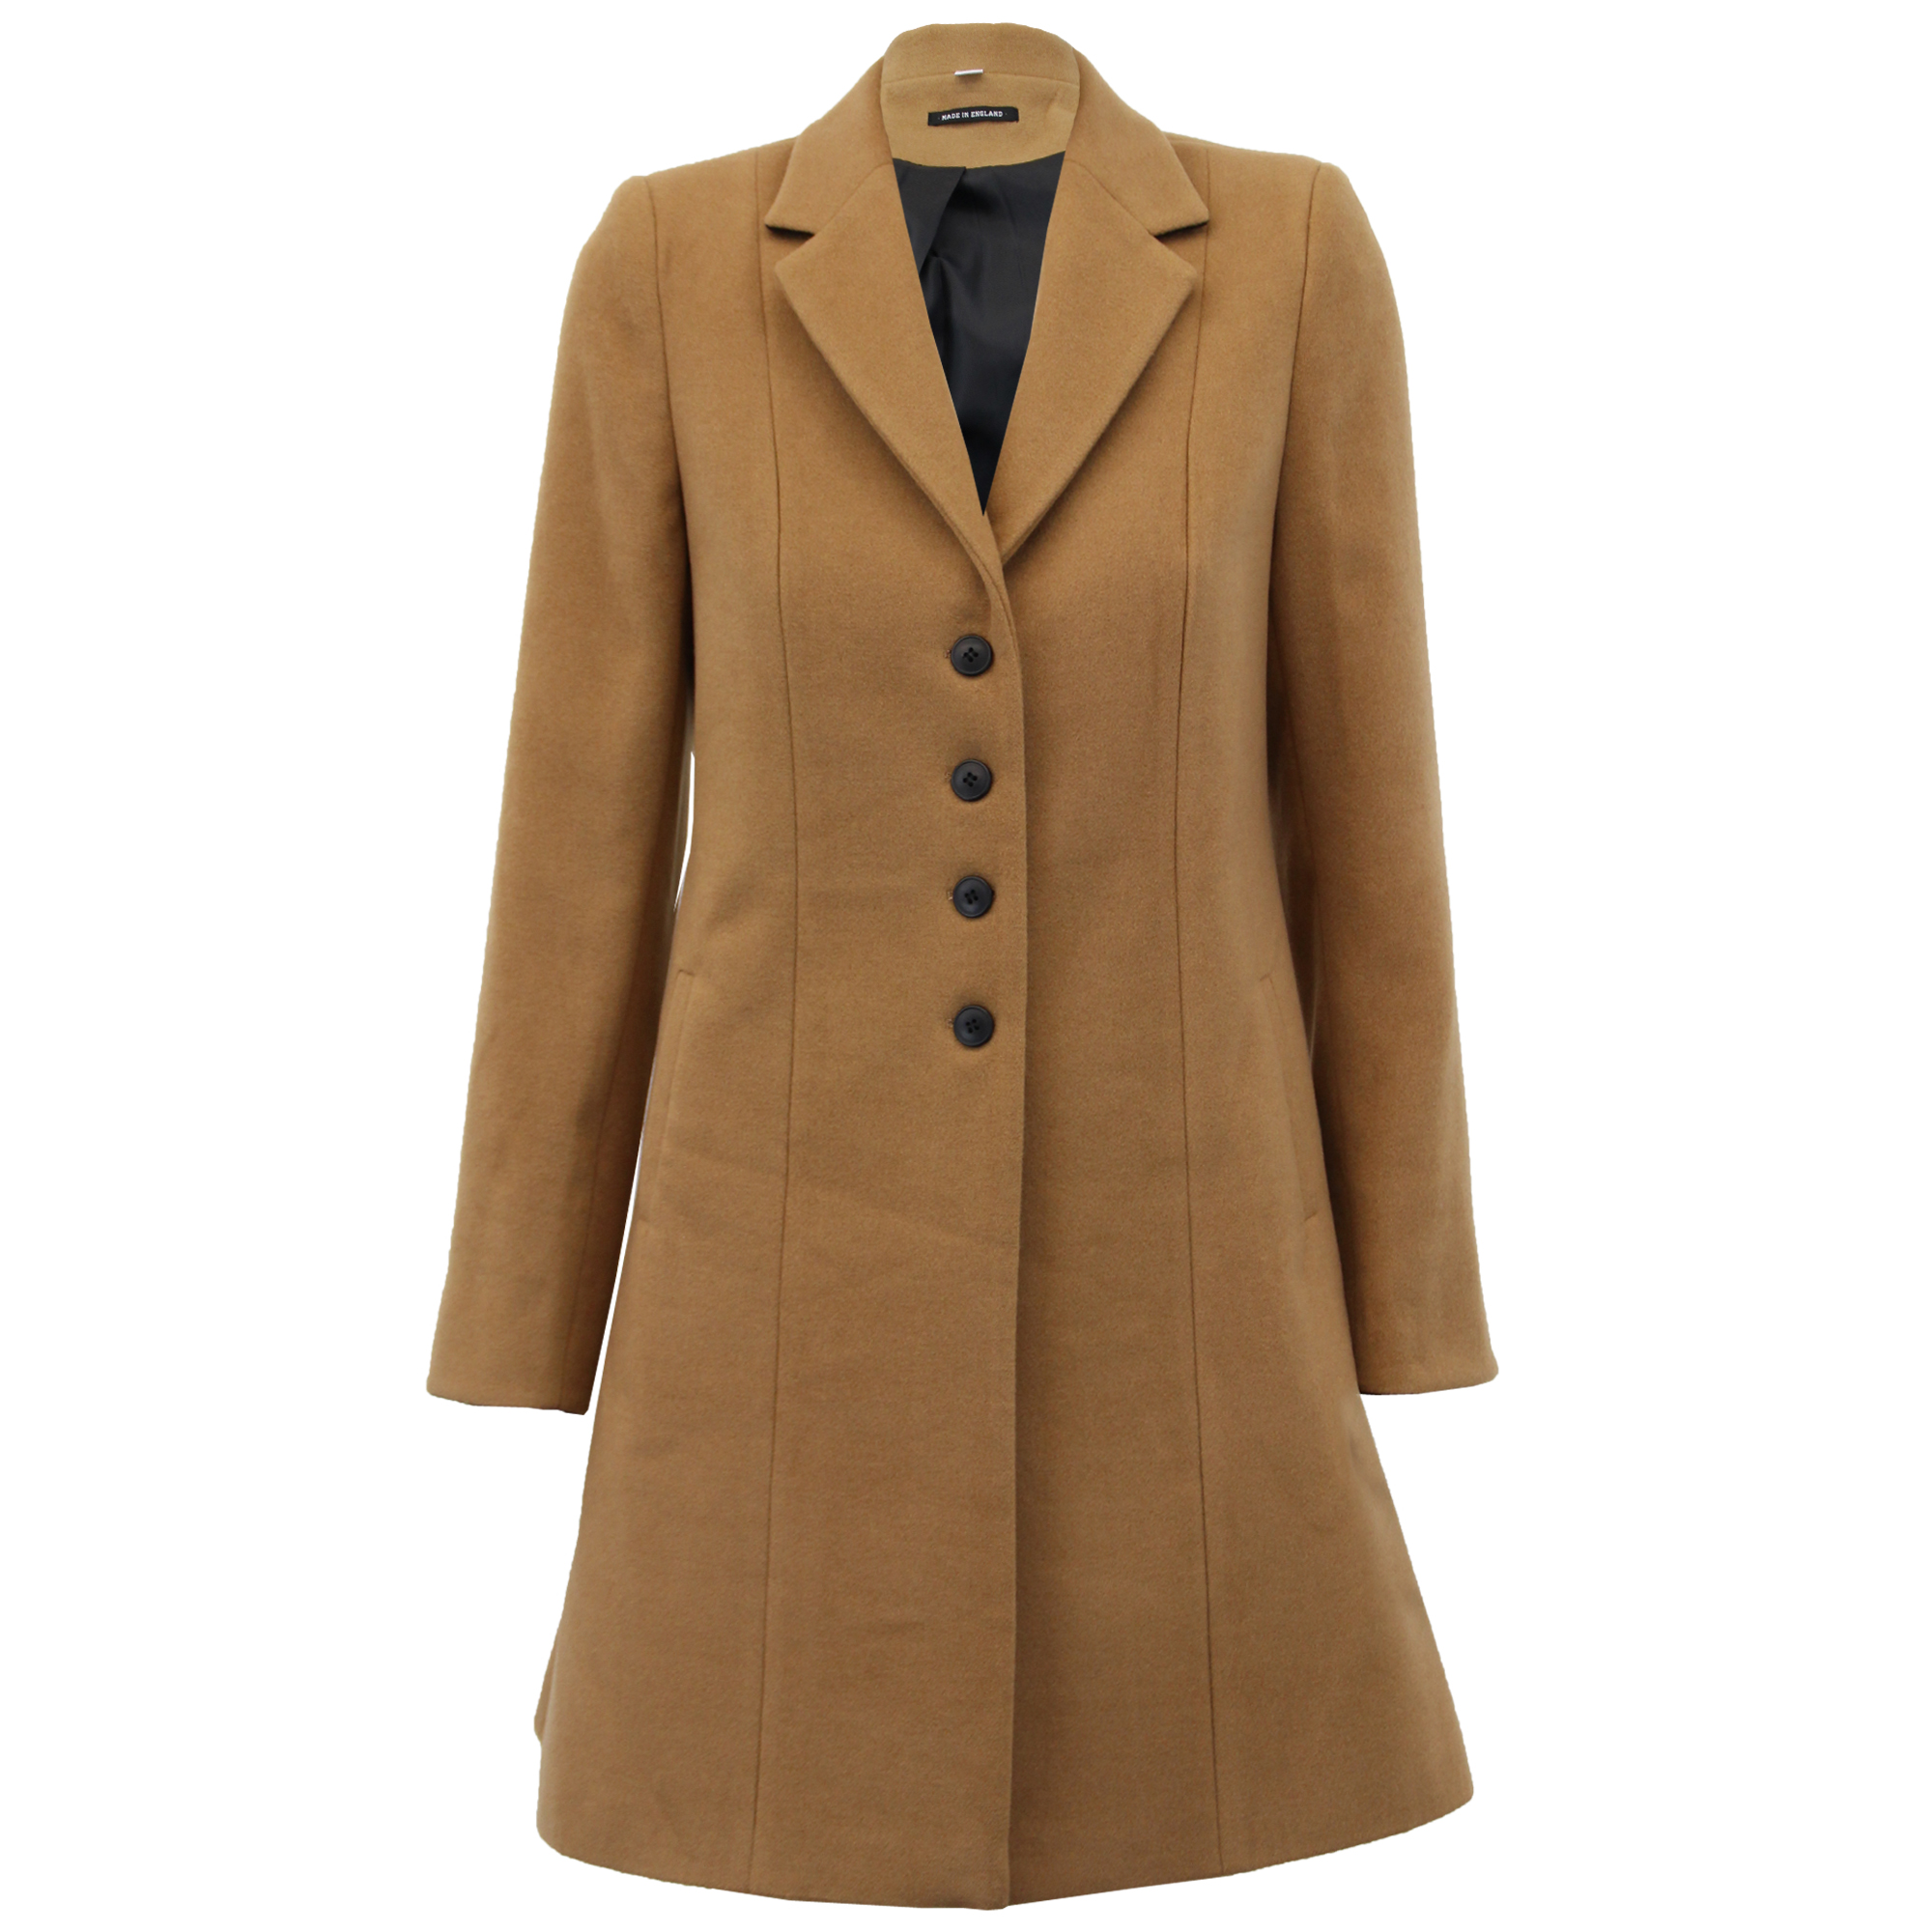 Find a great selection of coats, jackets and blazers for women at rutor-org.ga Shop winter coats, peacoats, raincoats, as well as trenches & blazers from brands like Topshop, Canada Goose, The North Face & more. Free shipping & returns.